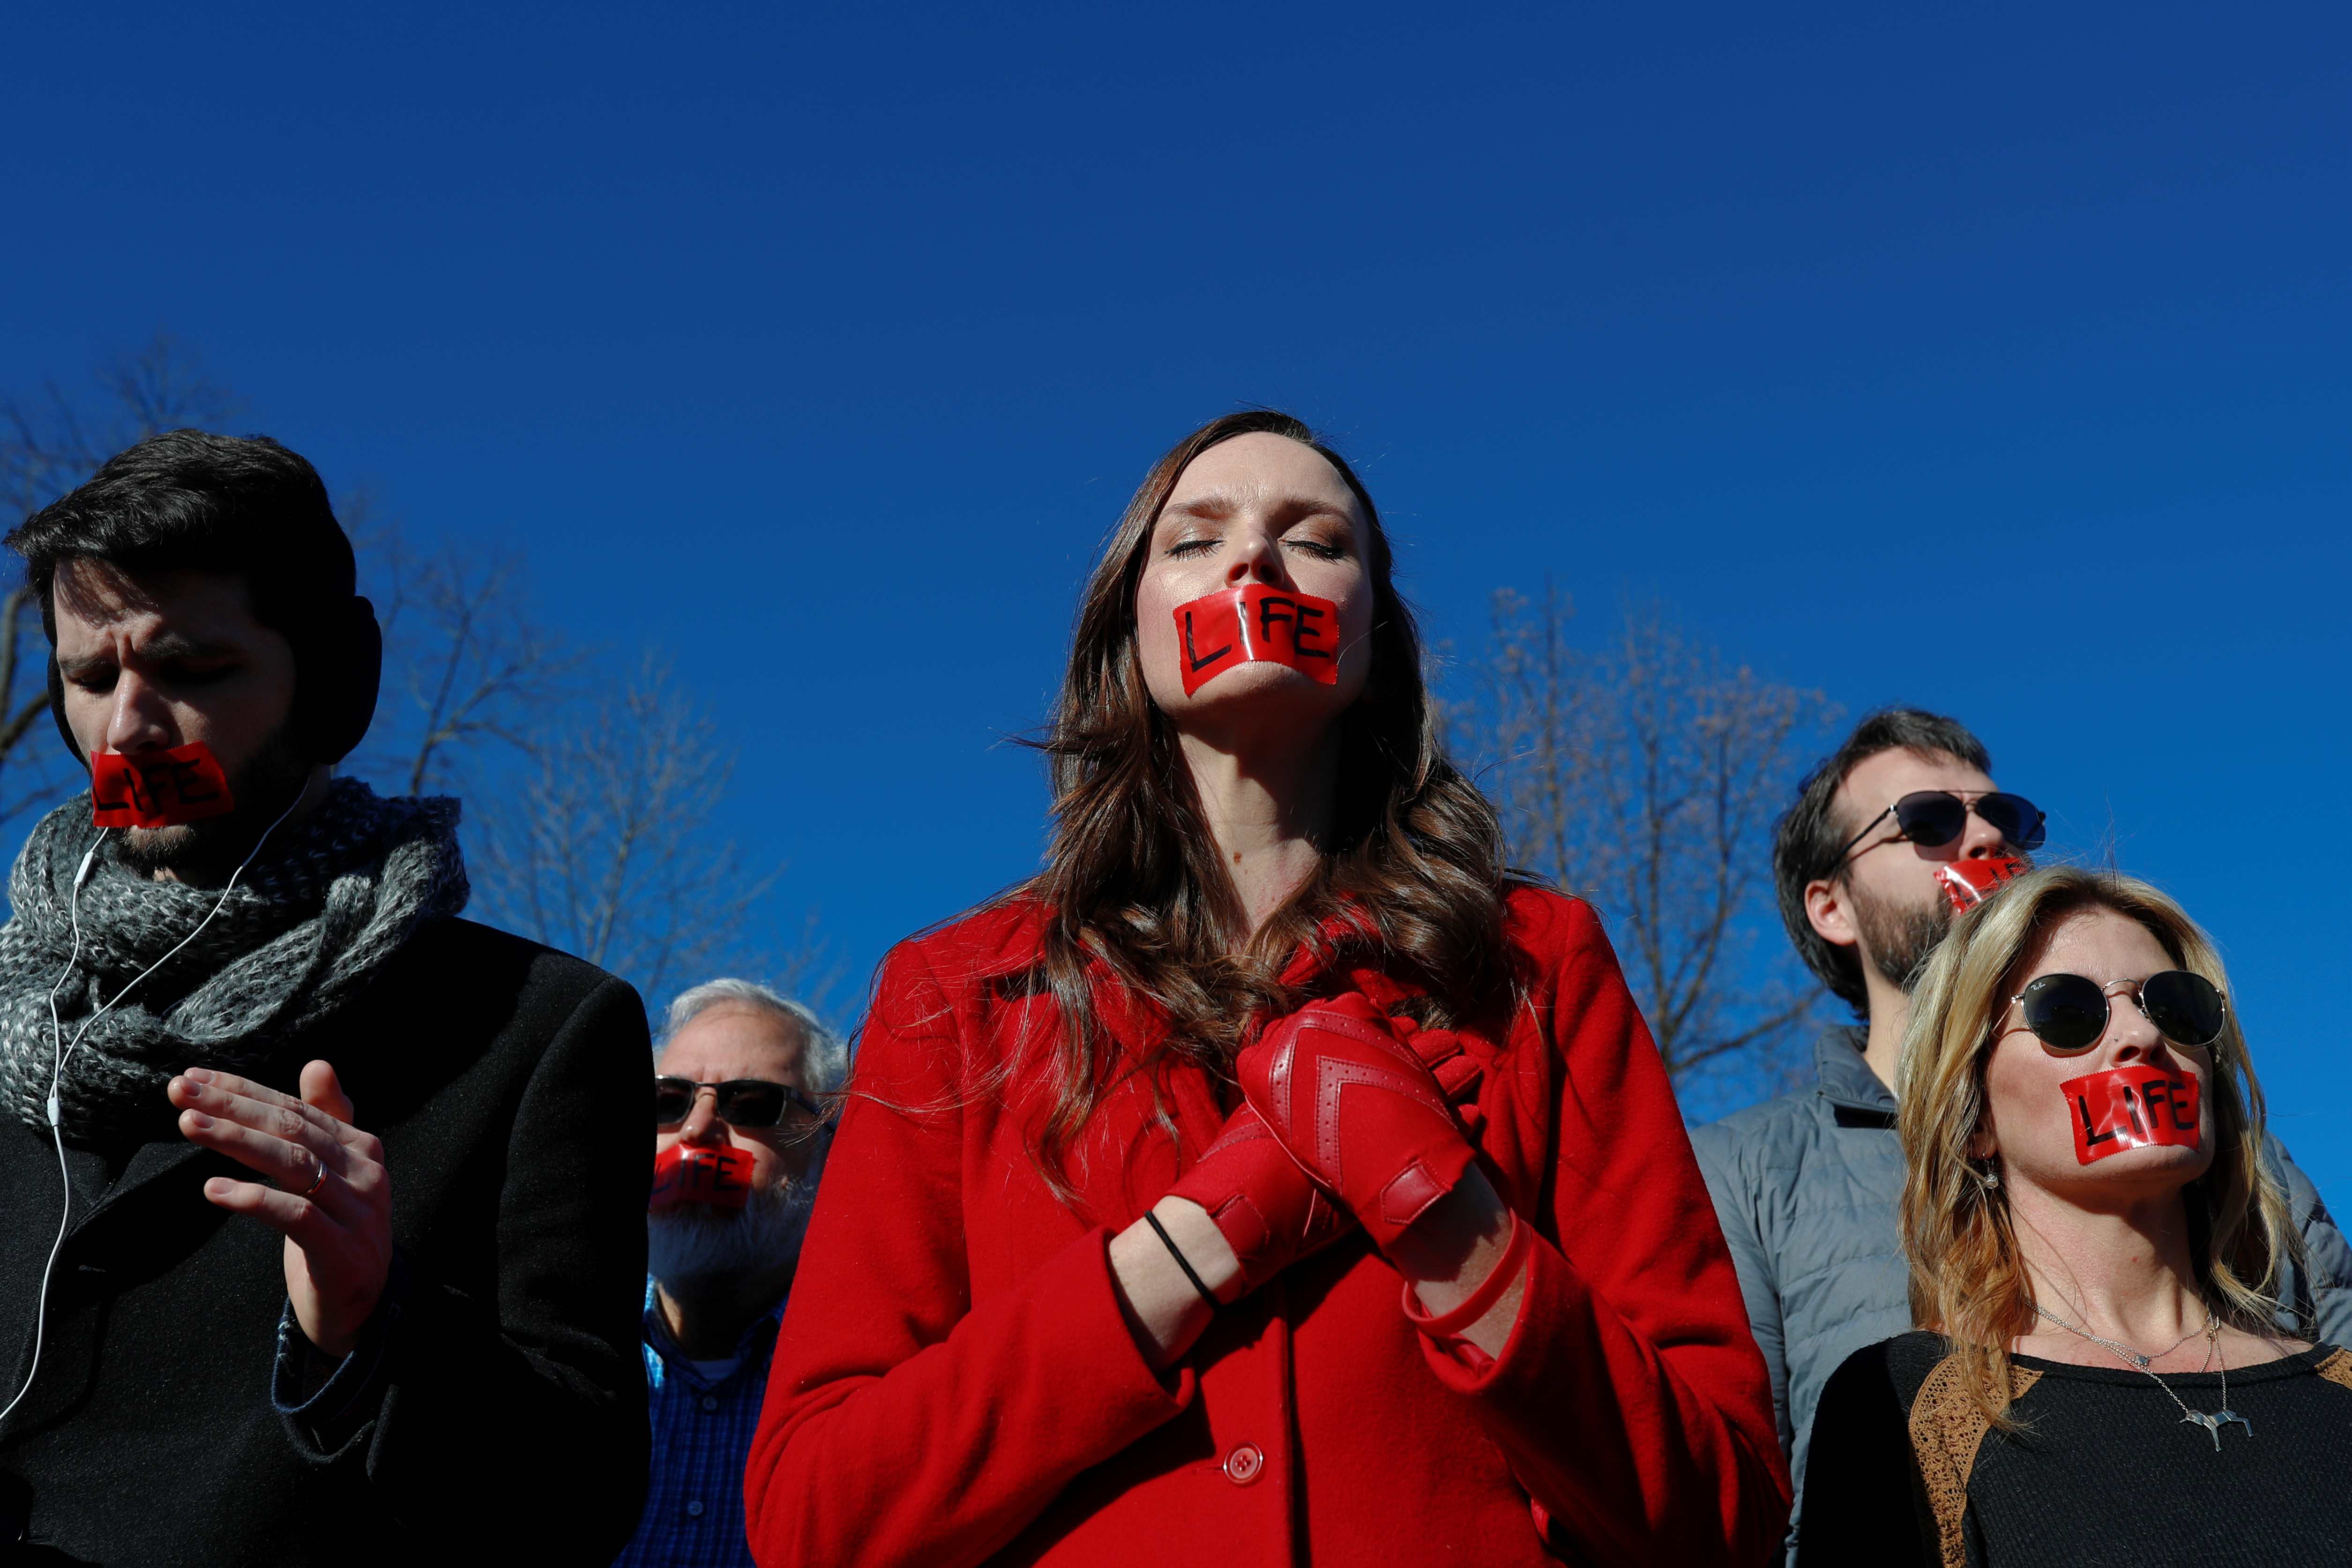 Pro-life demonstrators stand in silence outside of the U.S. Supreme Court as justices hear a major abortion case on the legality of a Republican-backed Louisiana law that imposes restrictions on abortion doctors, on Capitol Hill in Washington, U.S., March 4, 2020.  REUTERS/Tom Brenner